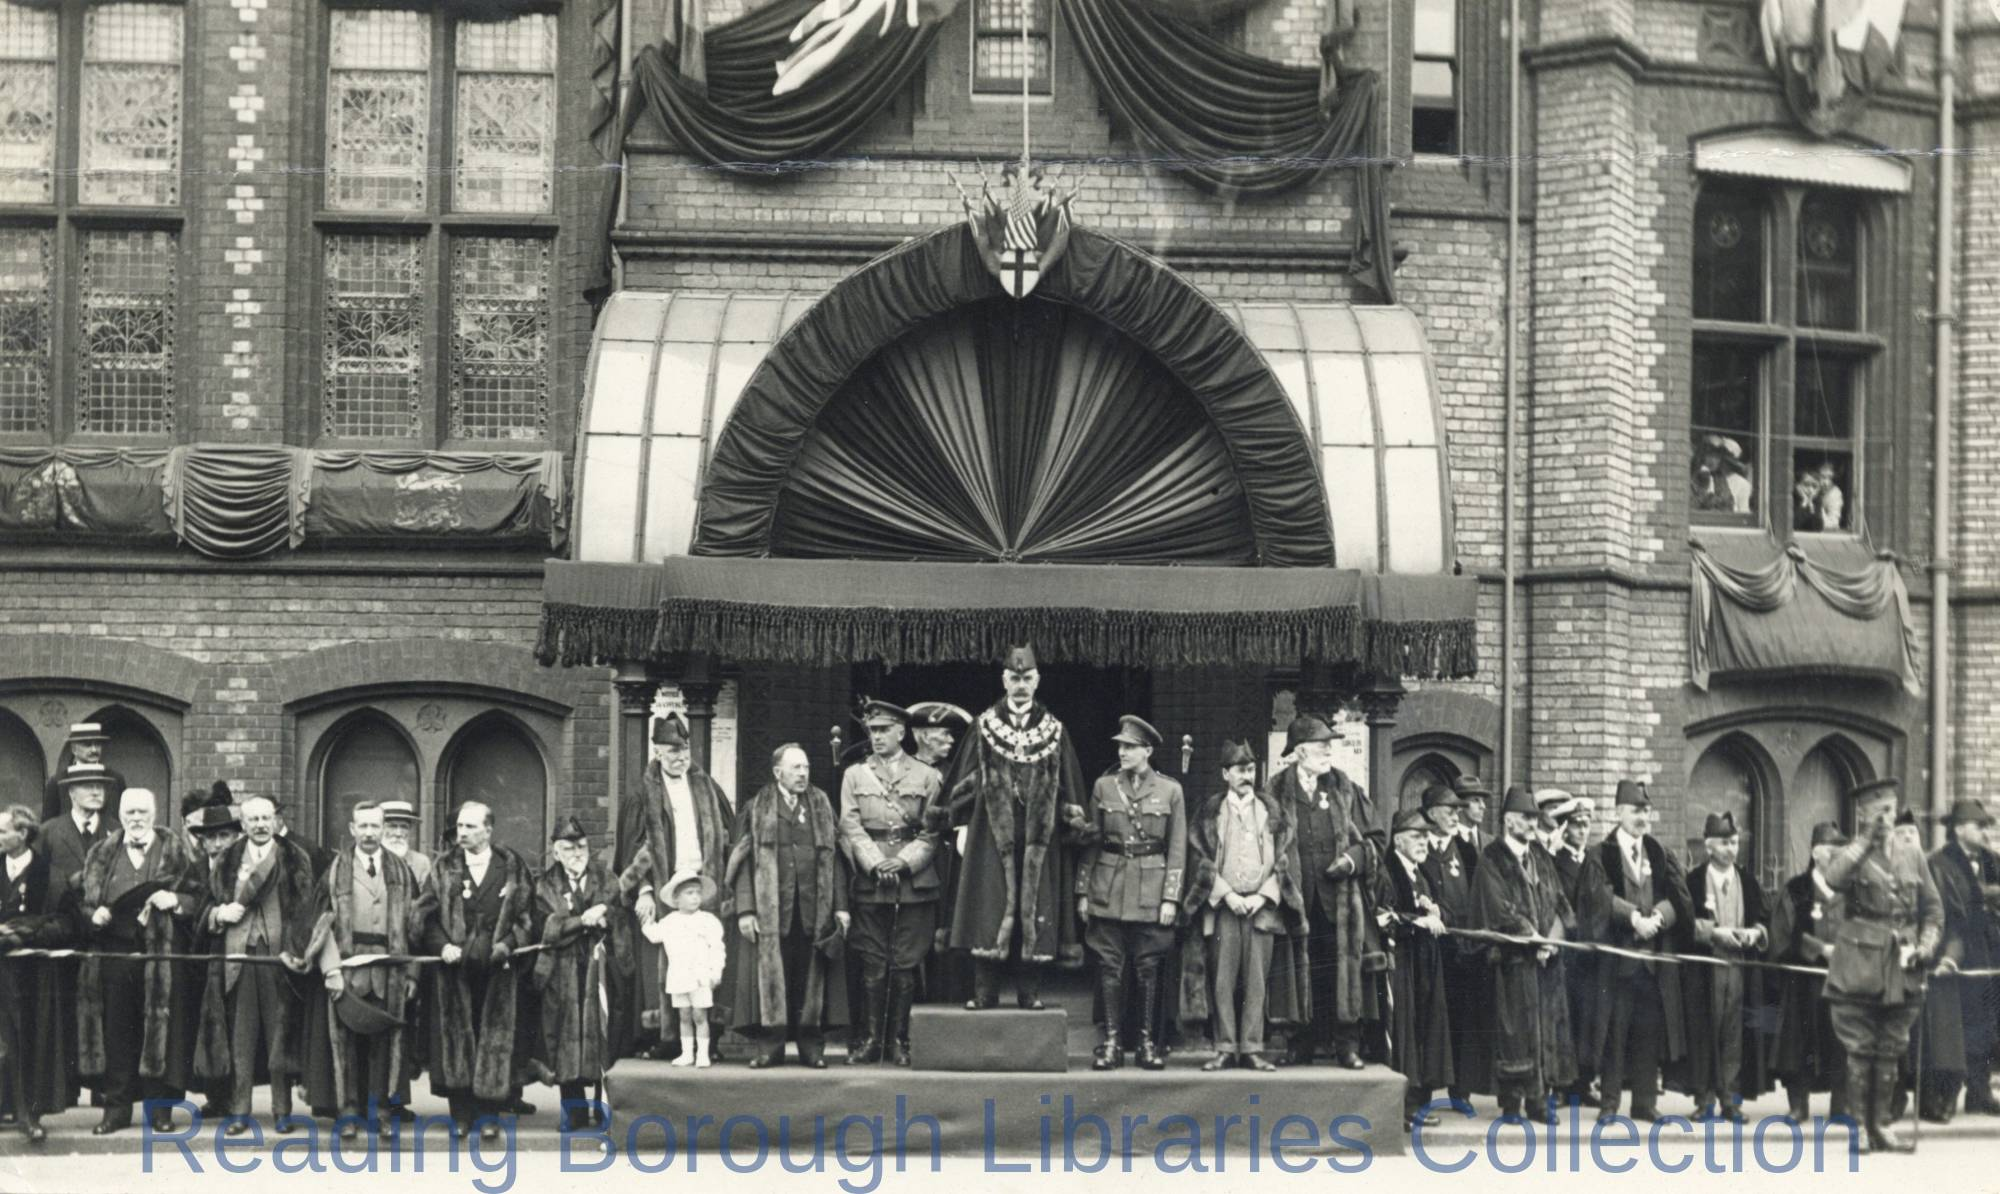 Mayor Alderman Stanley Hayward addresses Peace celebrations in Reading, 1919.